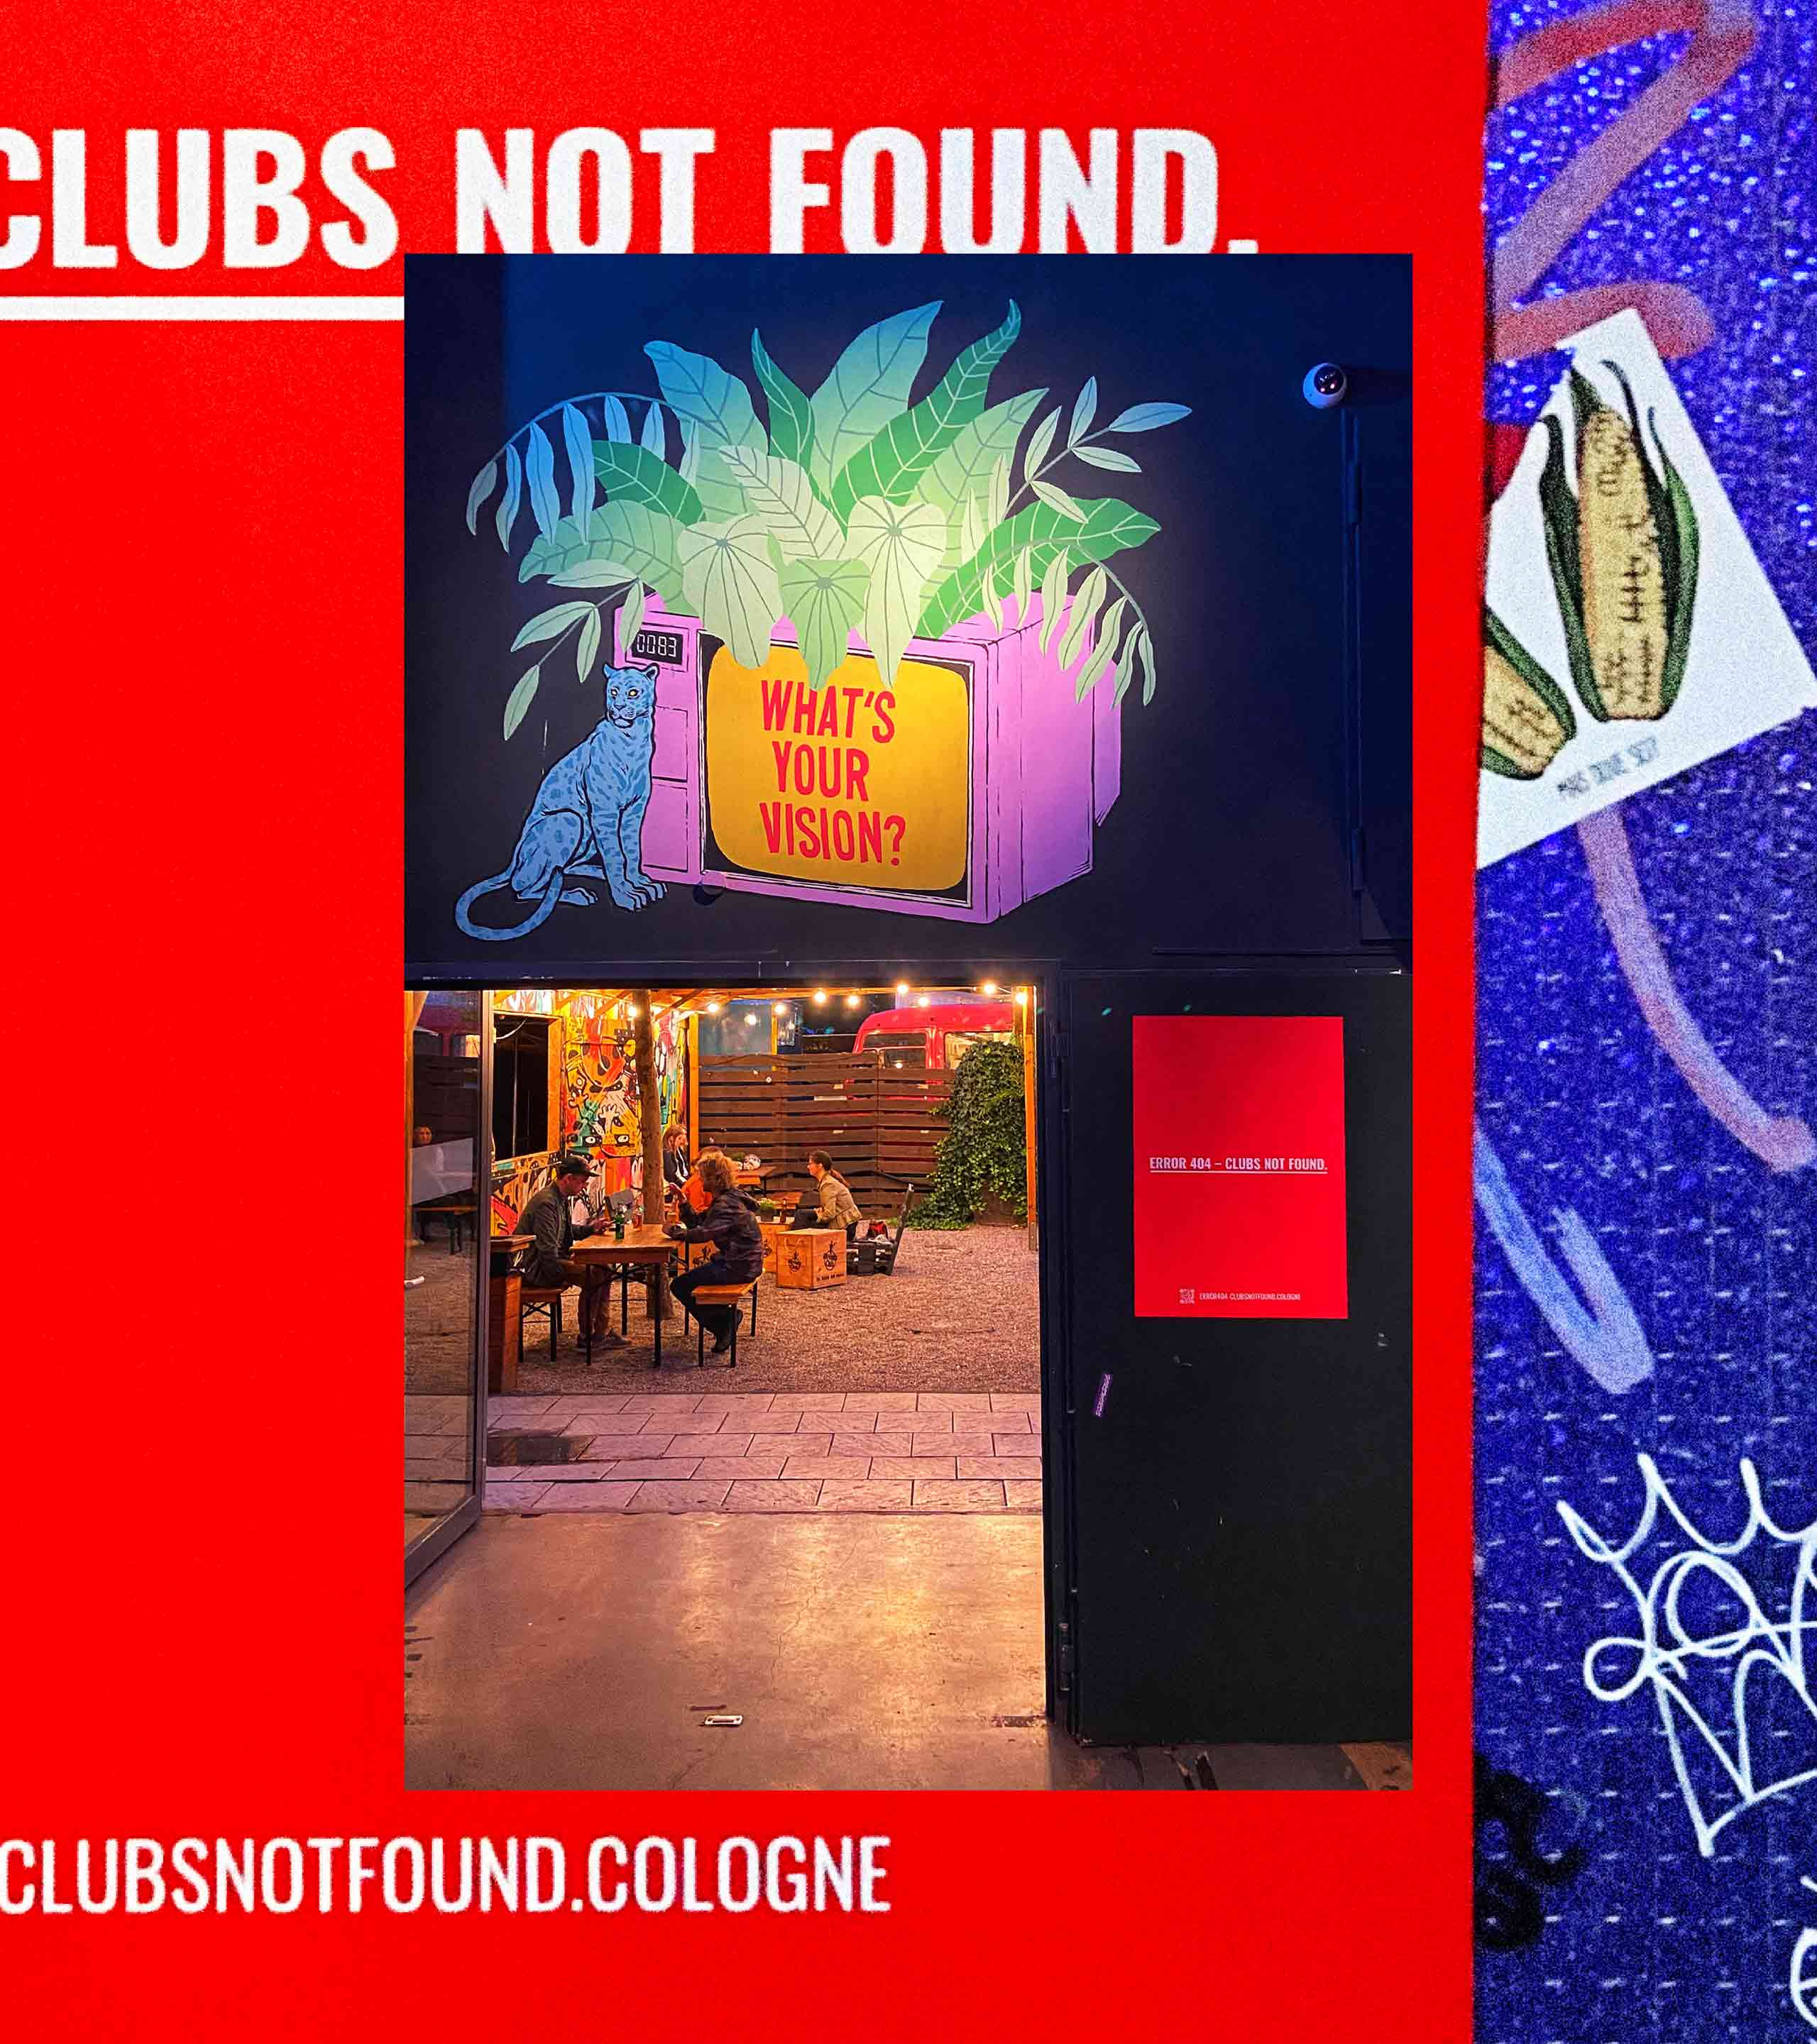 Aclewe clubsnotfound